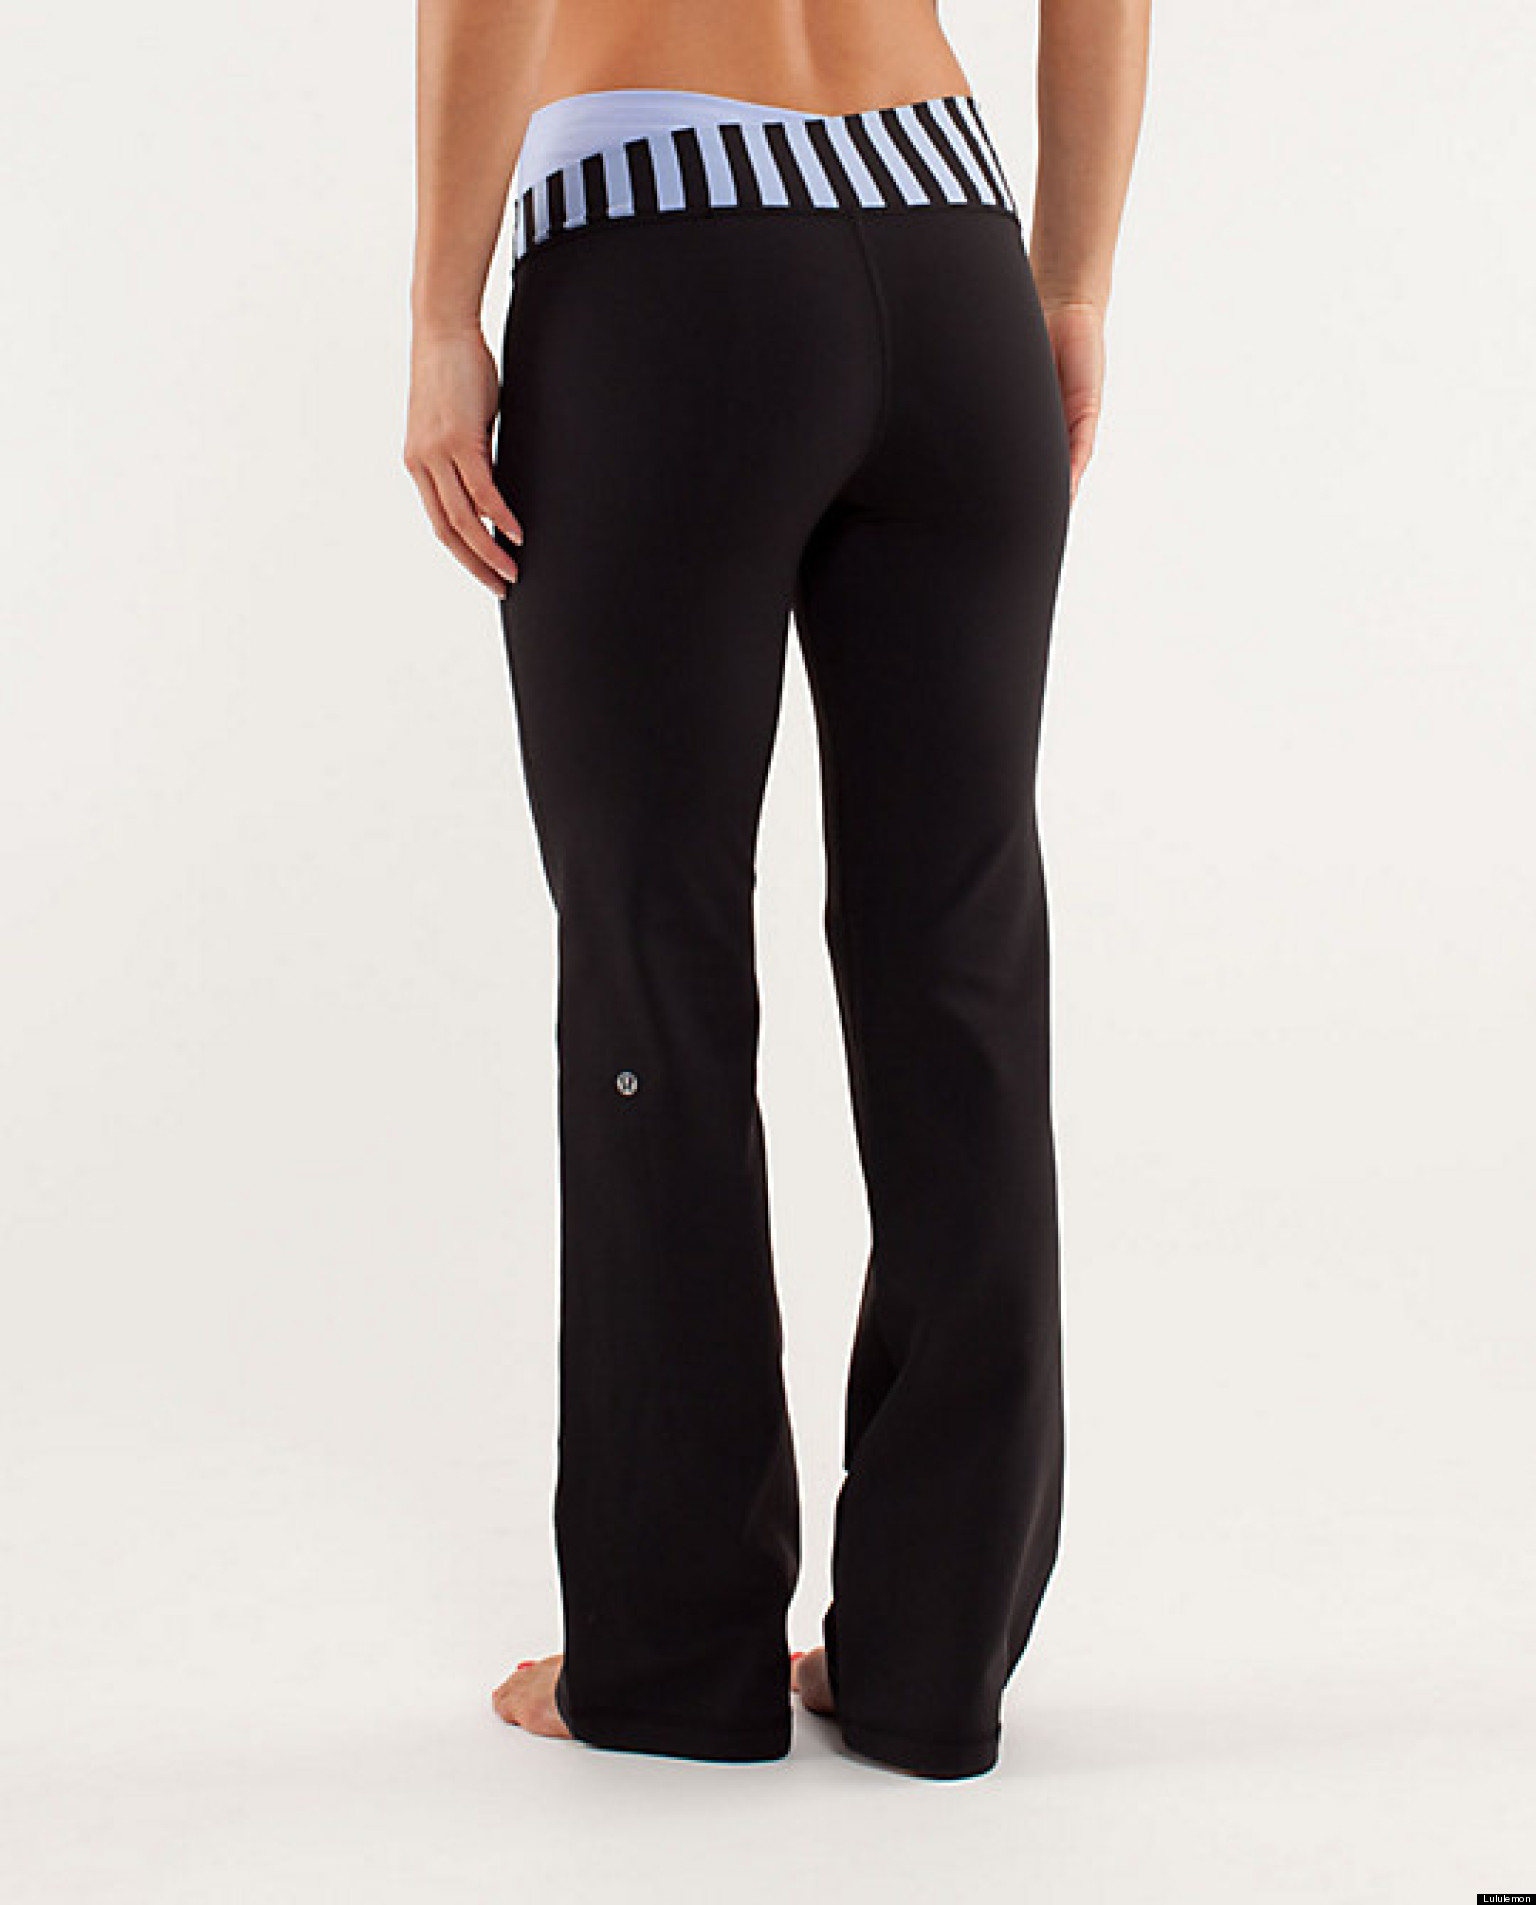 Lululemon Yoga Pants Facebook